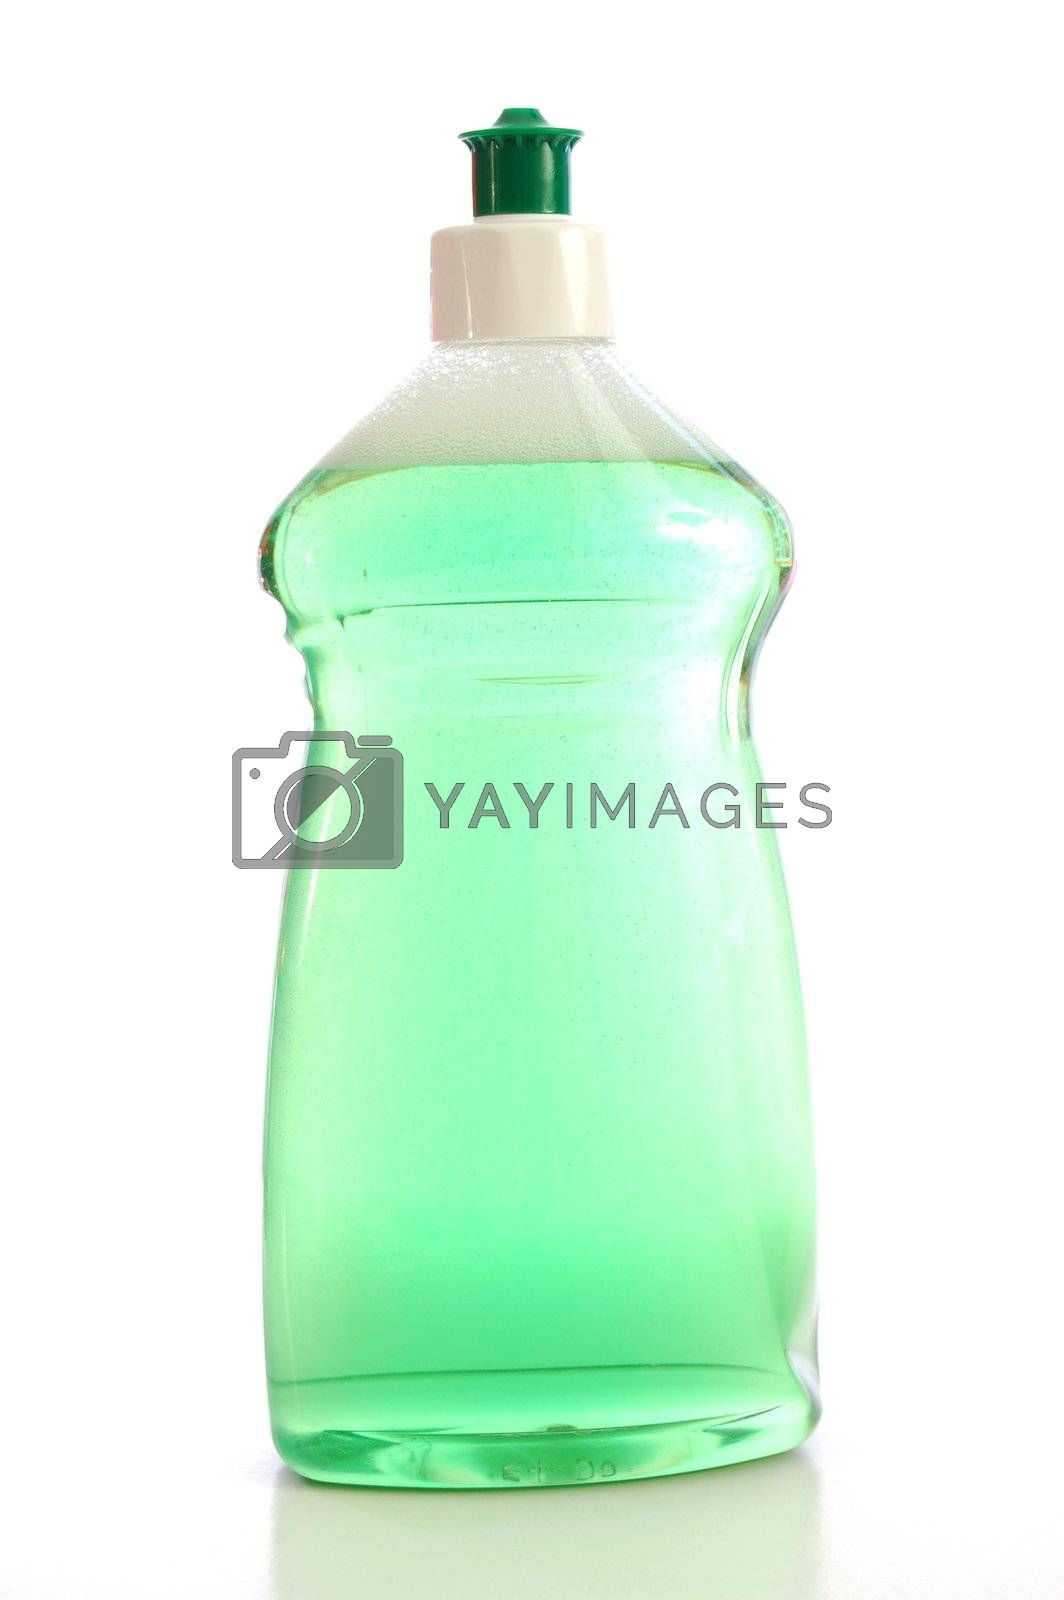 housekeeping with soap spray bottle for hygiene